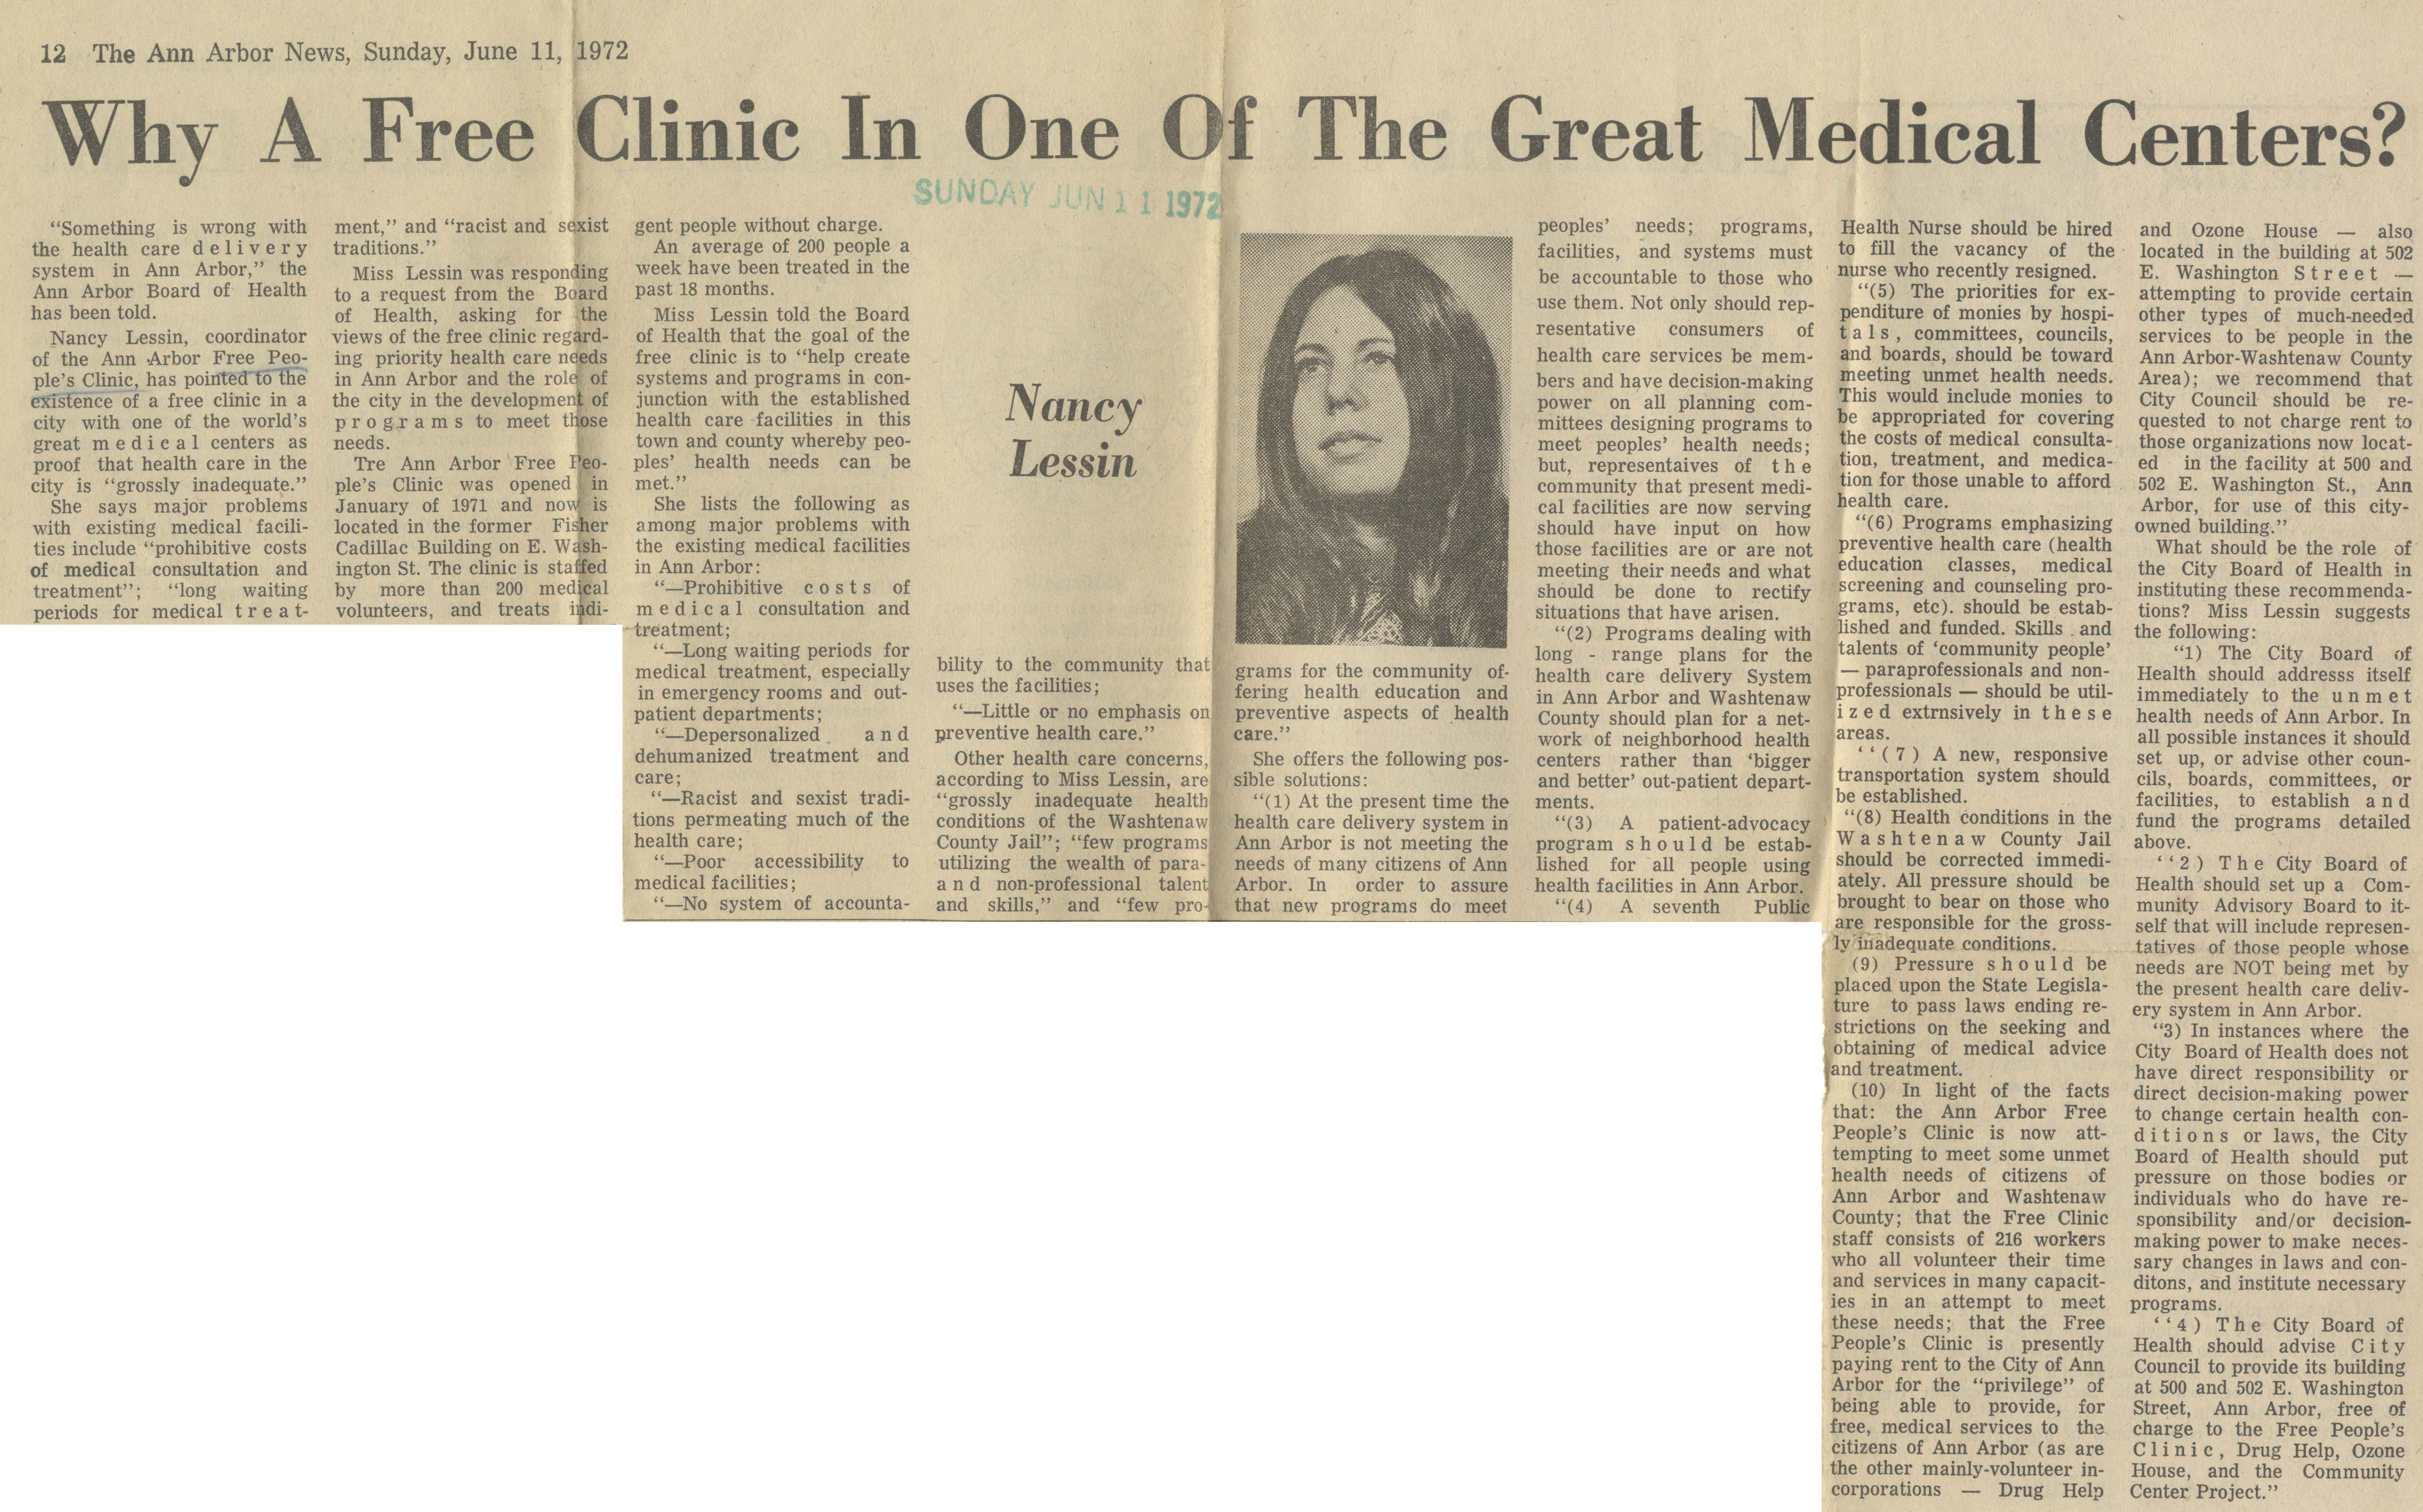 Why A Free Clinic In One Of The Great Medical Centers? image